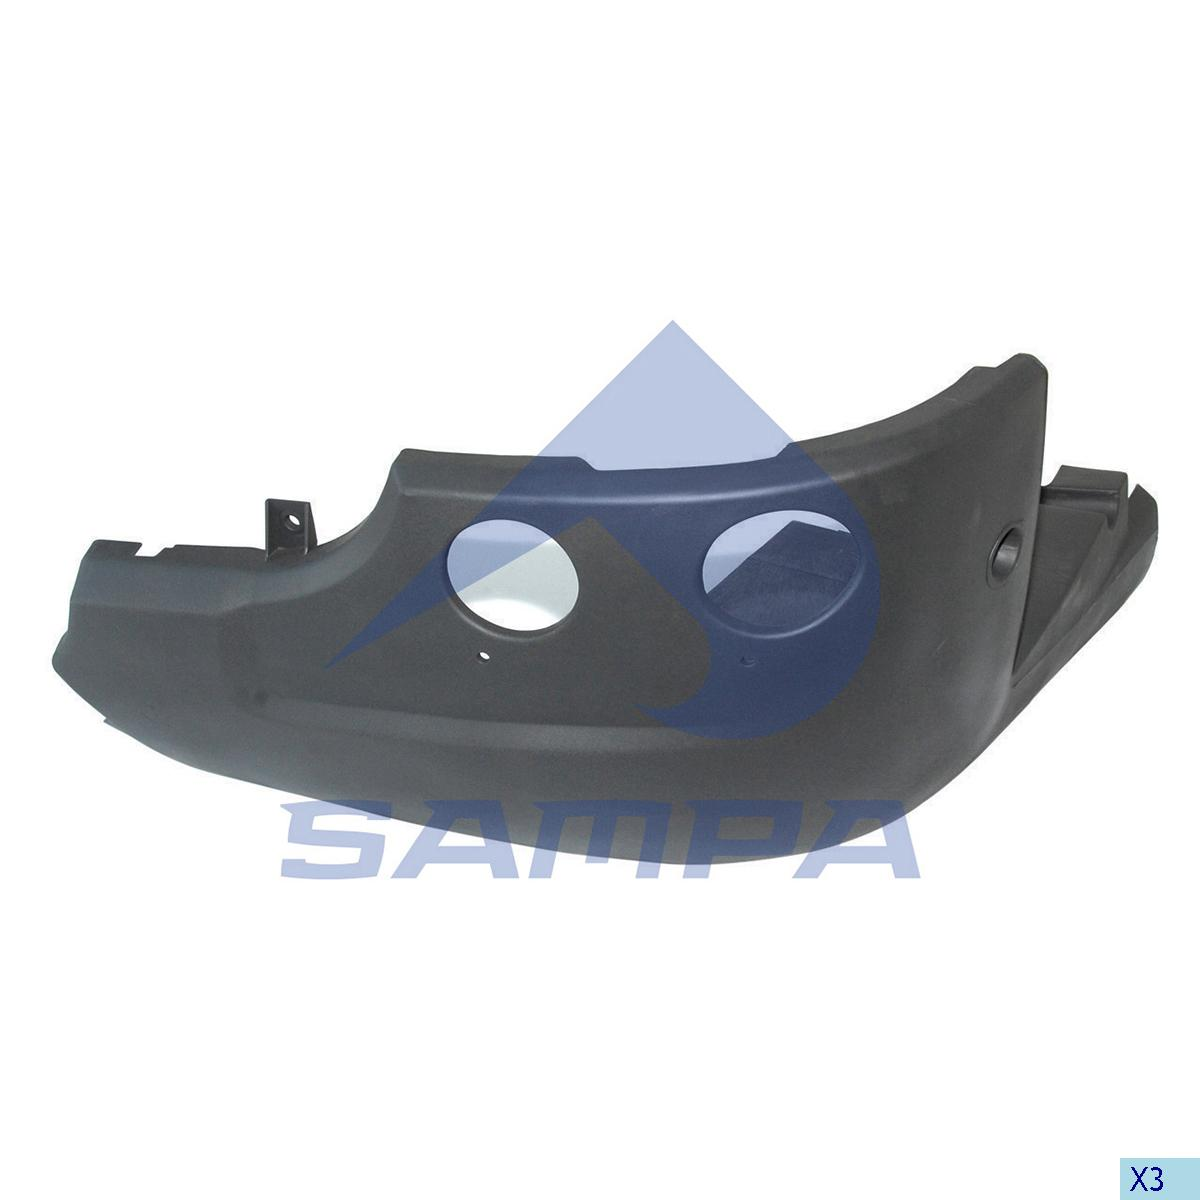 Bumper, Scania, Chassis